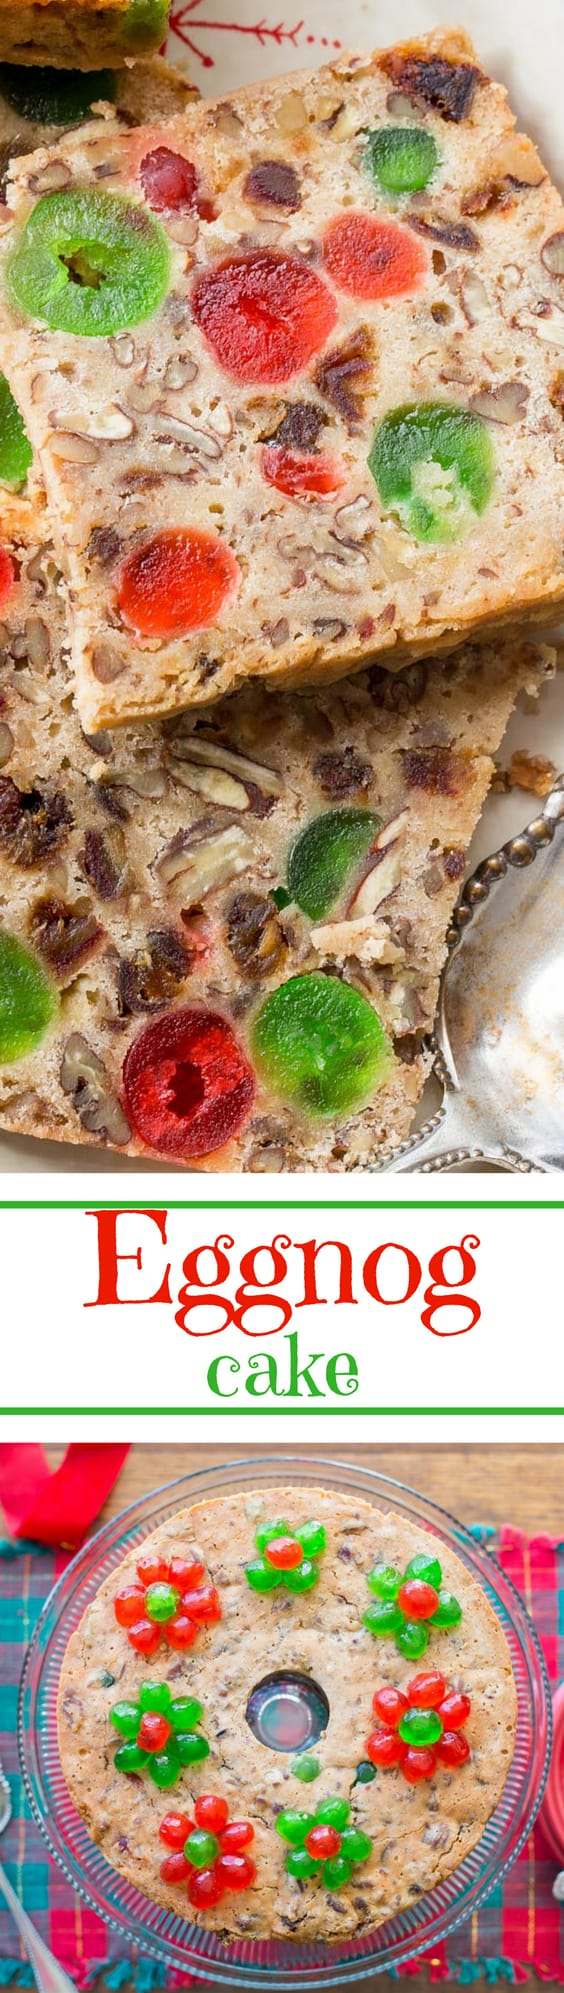 Mamma's Eggnog Cake - A delicious fruit cake loaded with candied cherries, dates, and nuts and soaked with bourbon. www.savingdessert.com